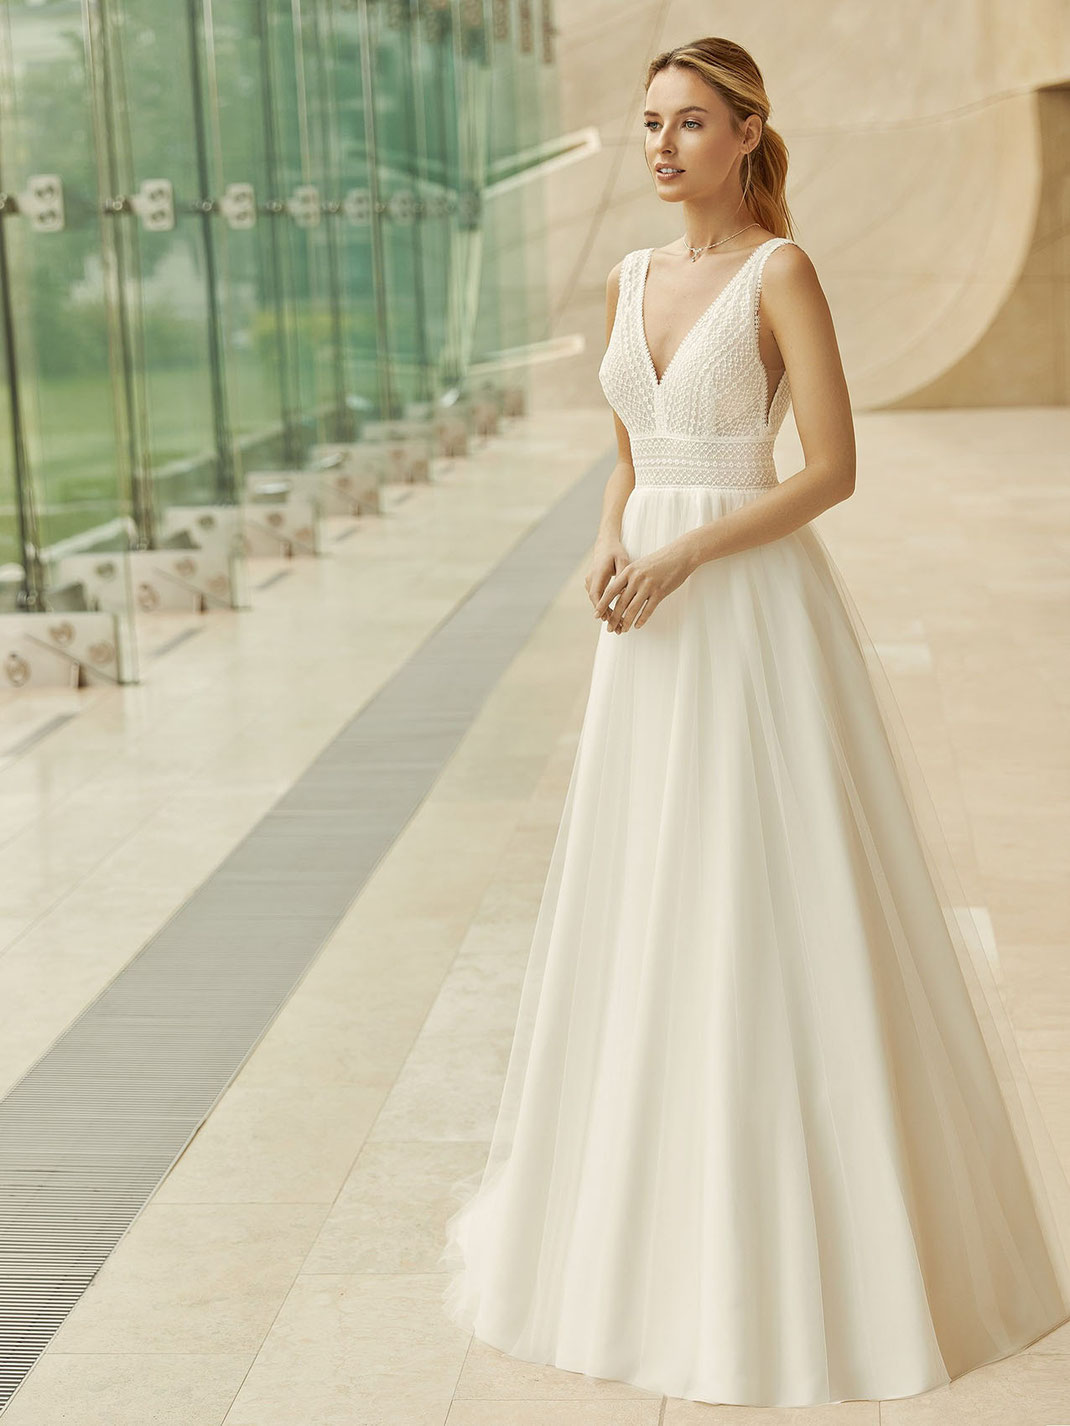 Brautkleid Gloria aus der Bianco Evento Kollektion 2021